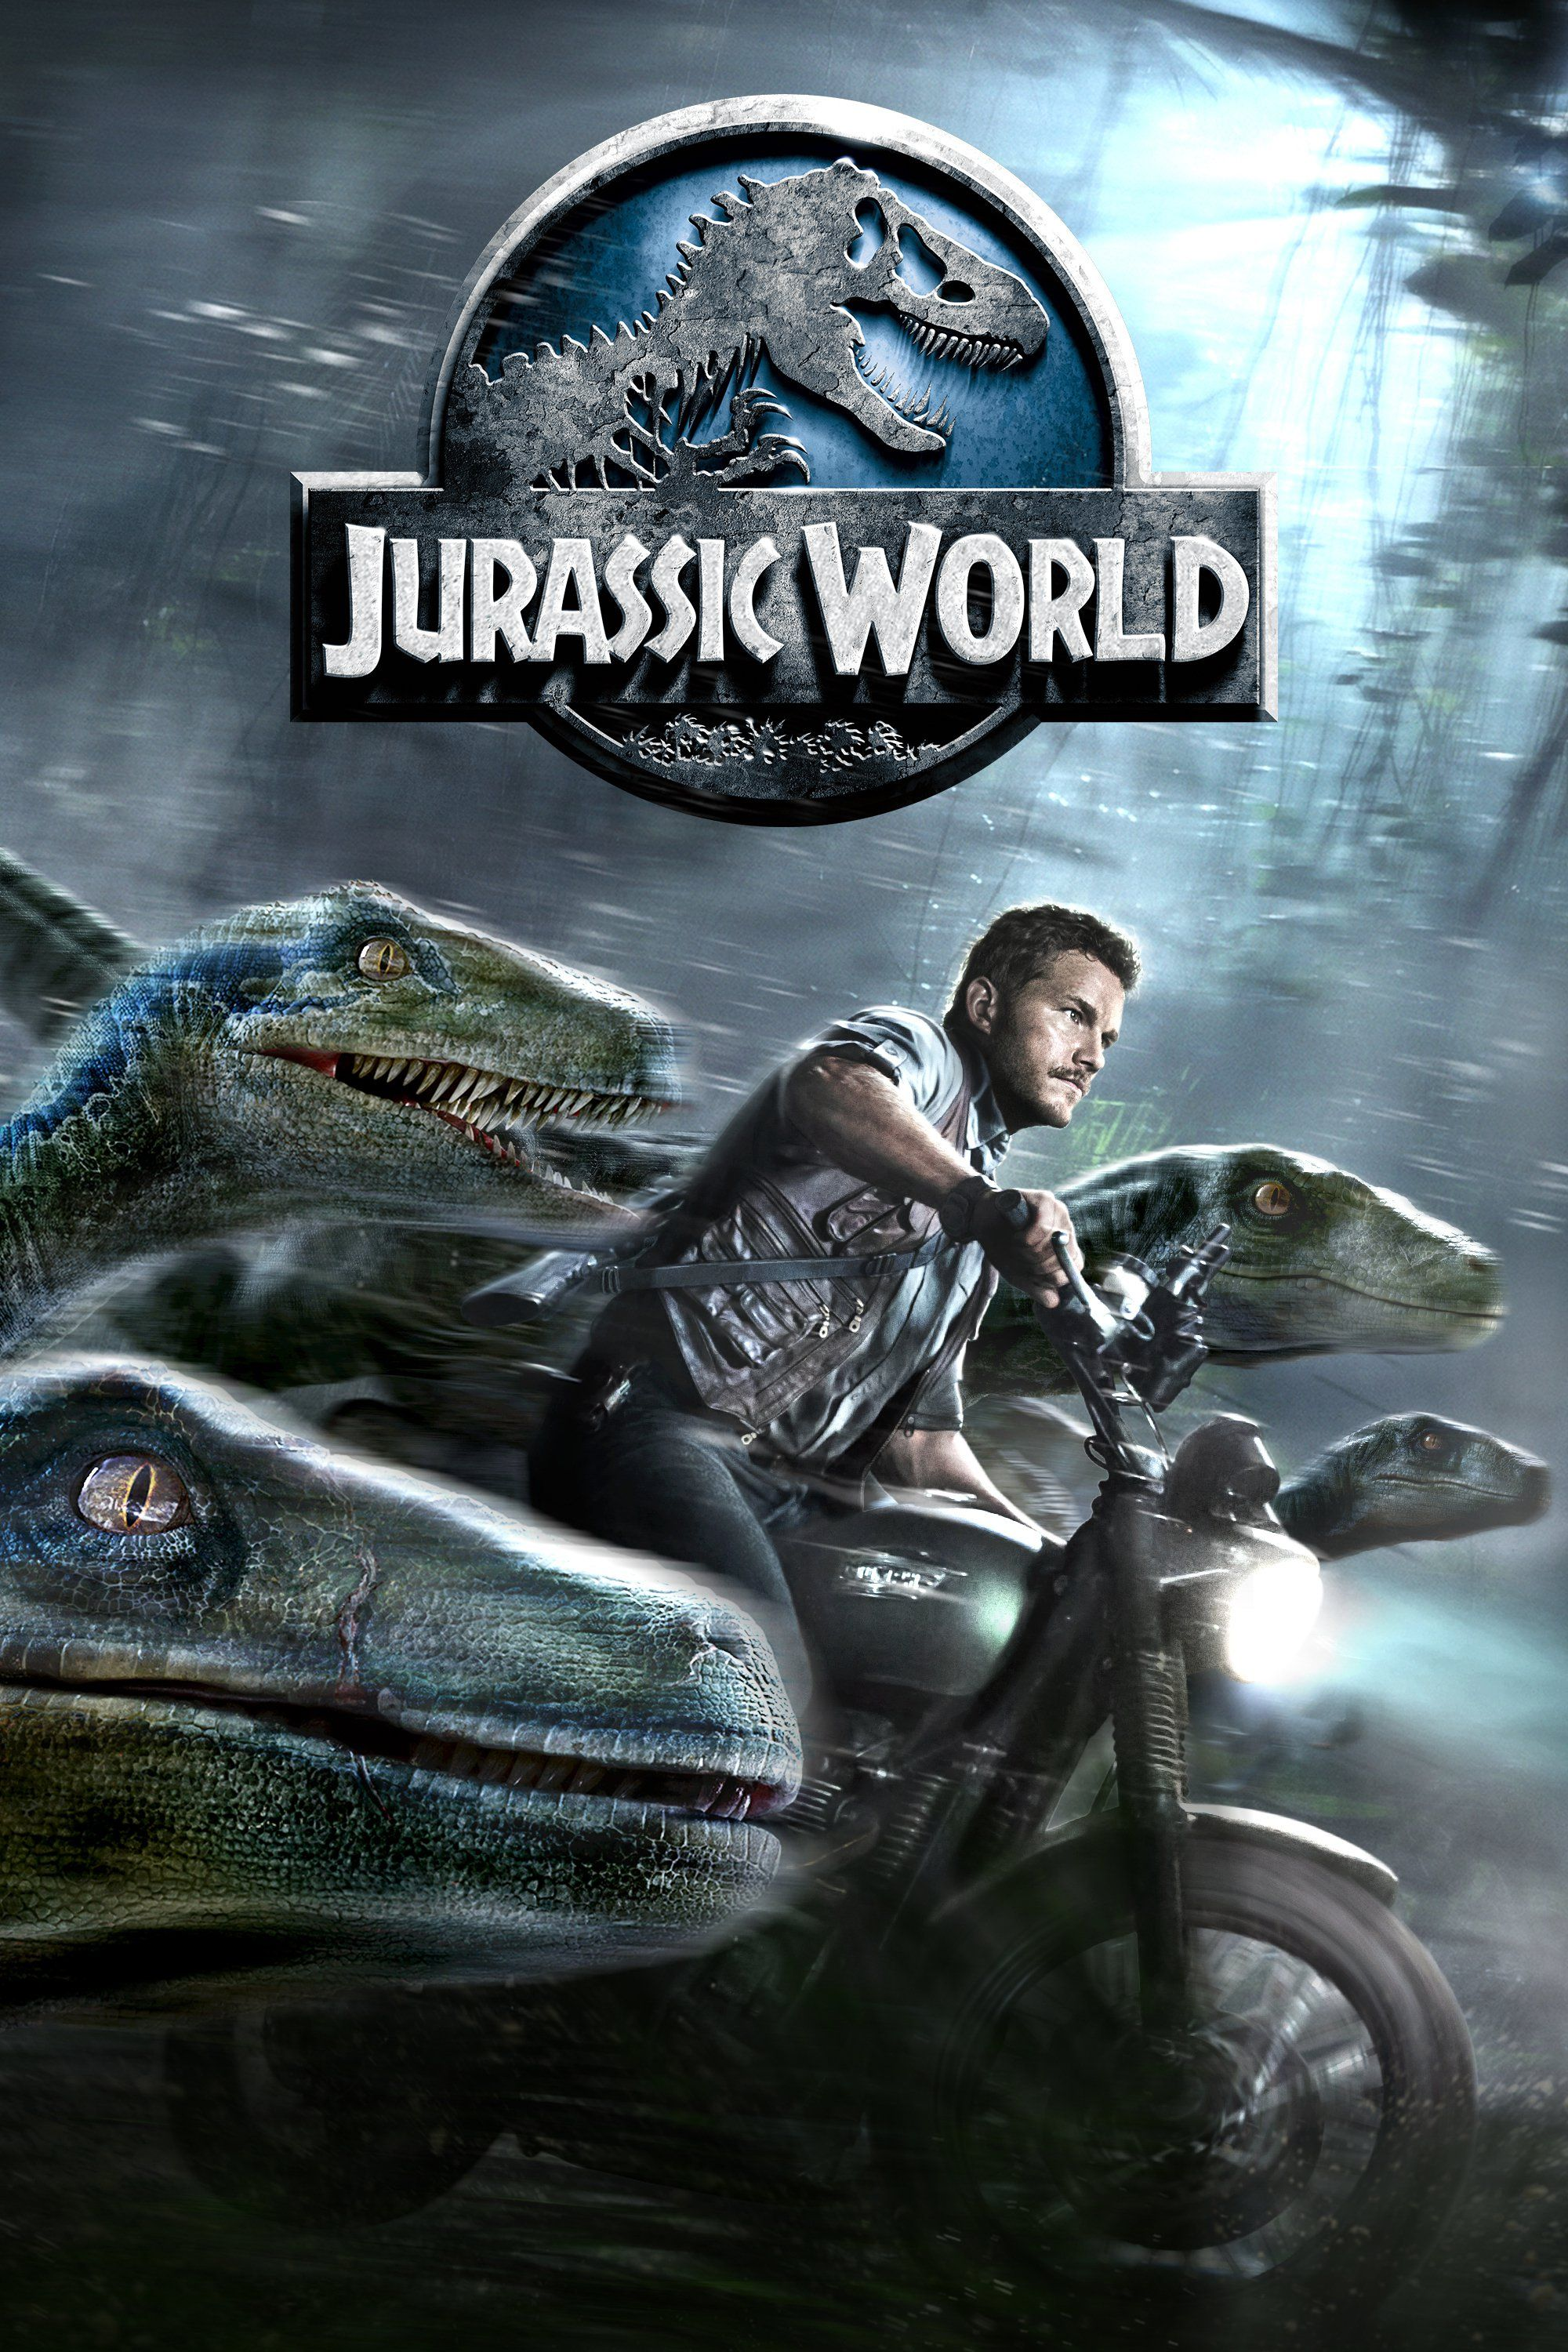 Jurassic World Film, Jurassic park, Films online